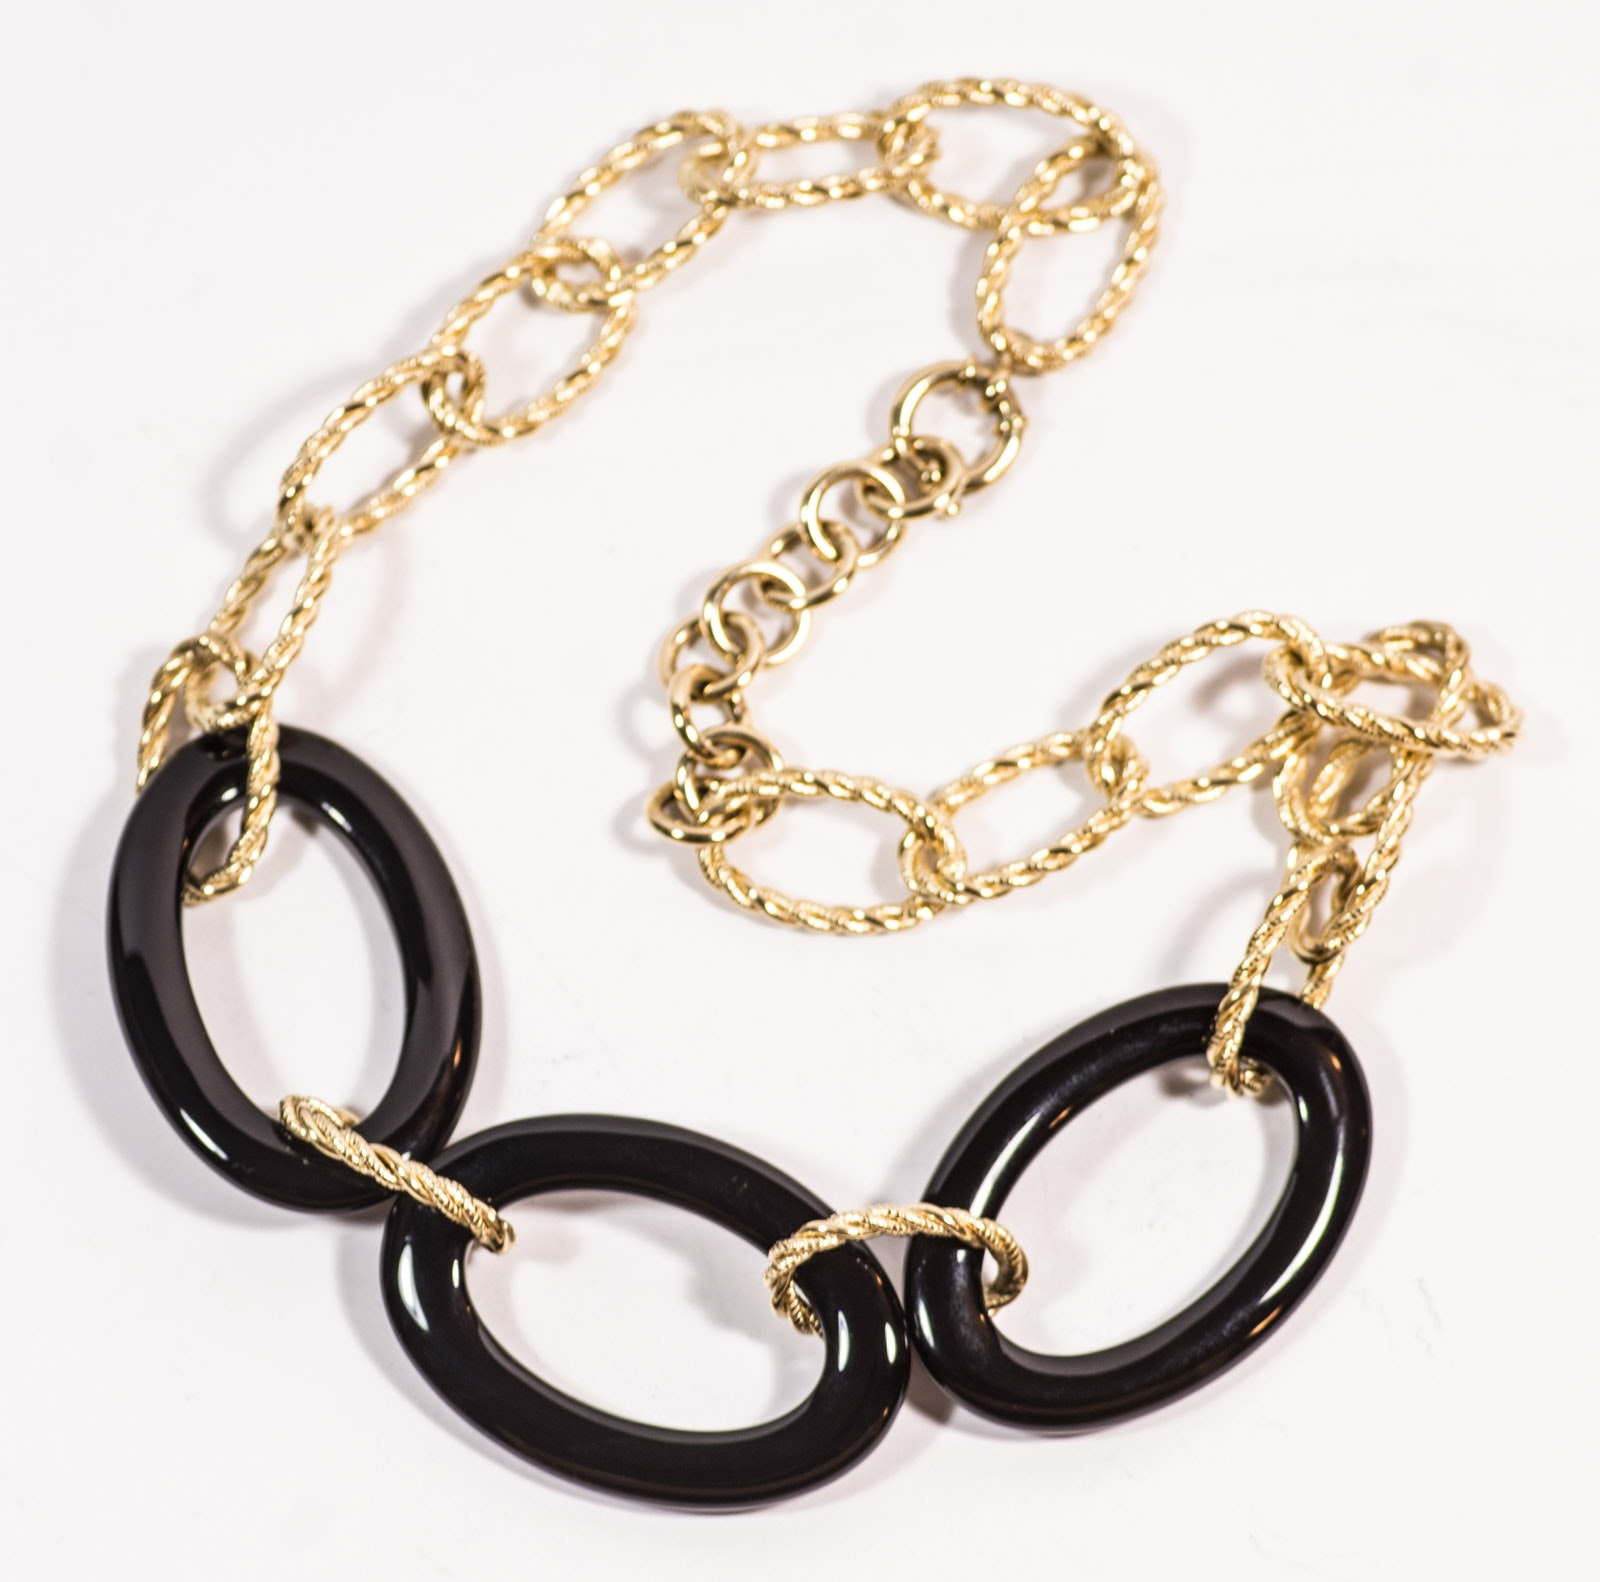 18K Yellow Gold Black Onyx Necklace